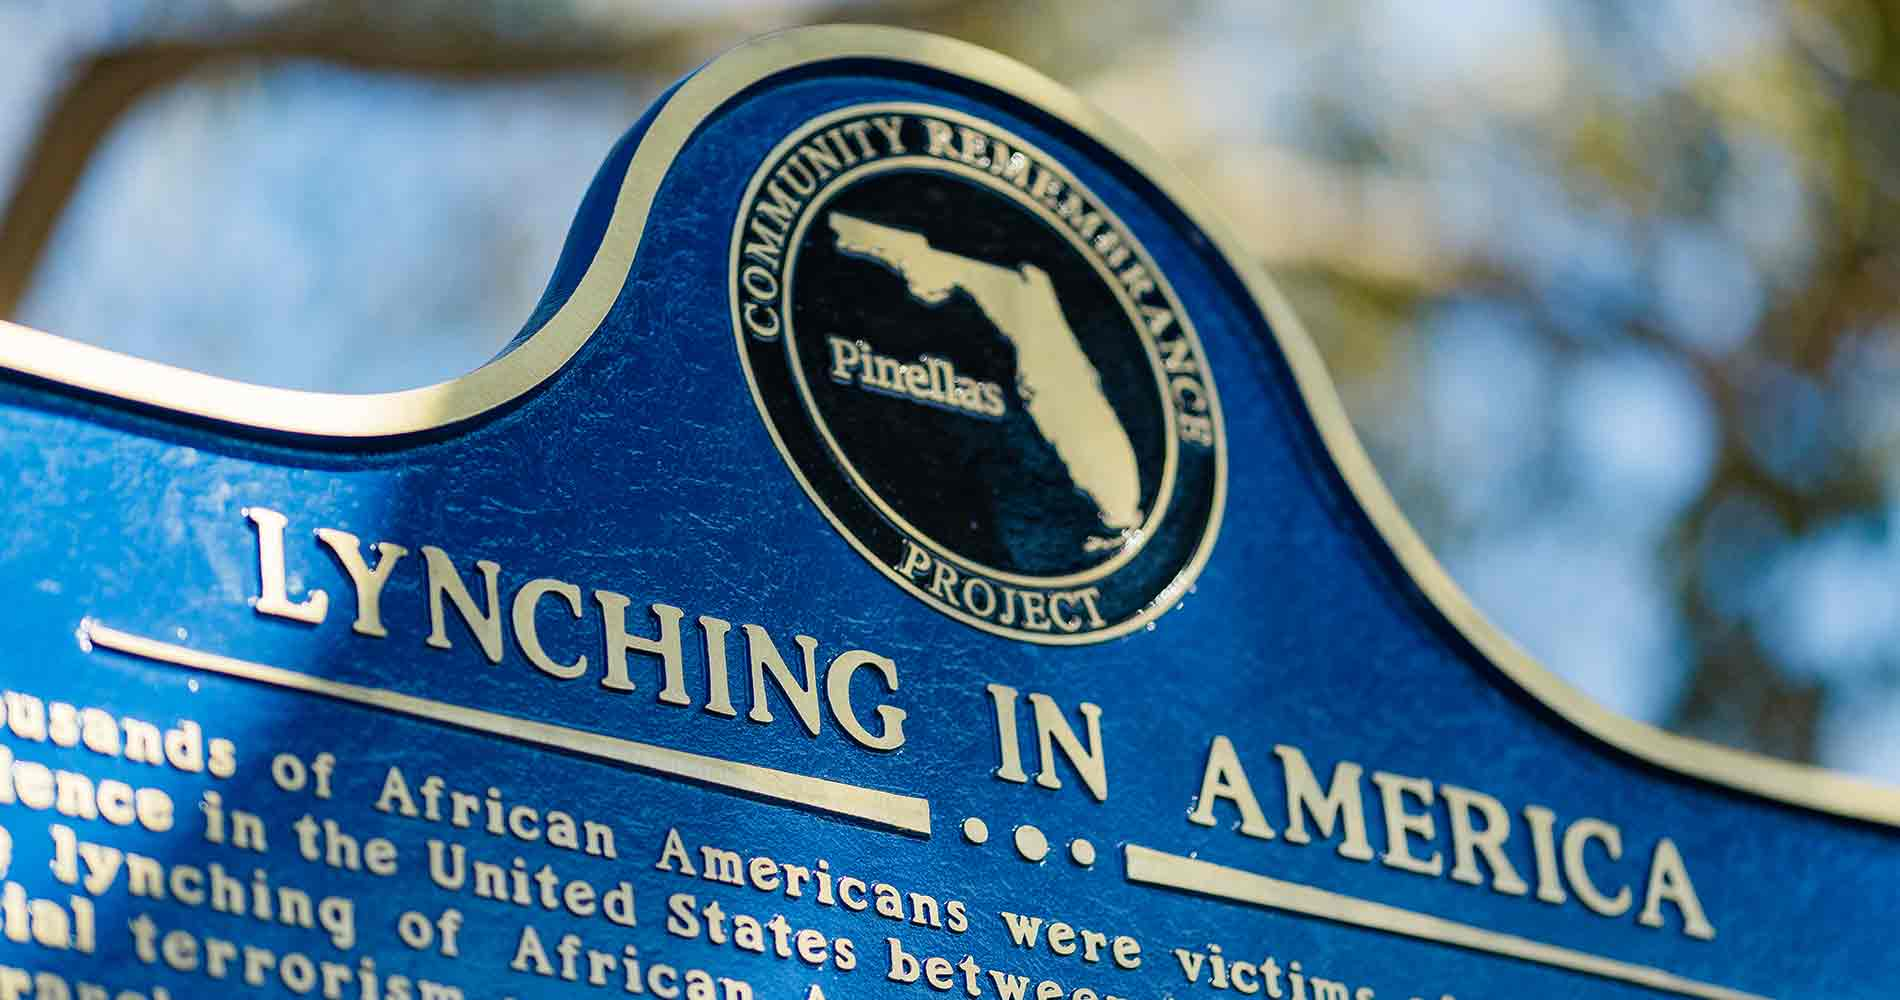 EJI Partners with Pinellas County, Florida, to Memorialize Lynching of John Evans 1